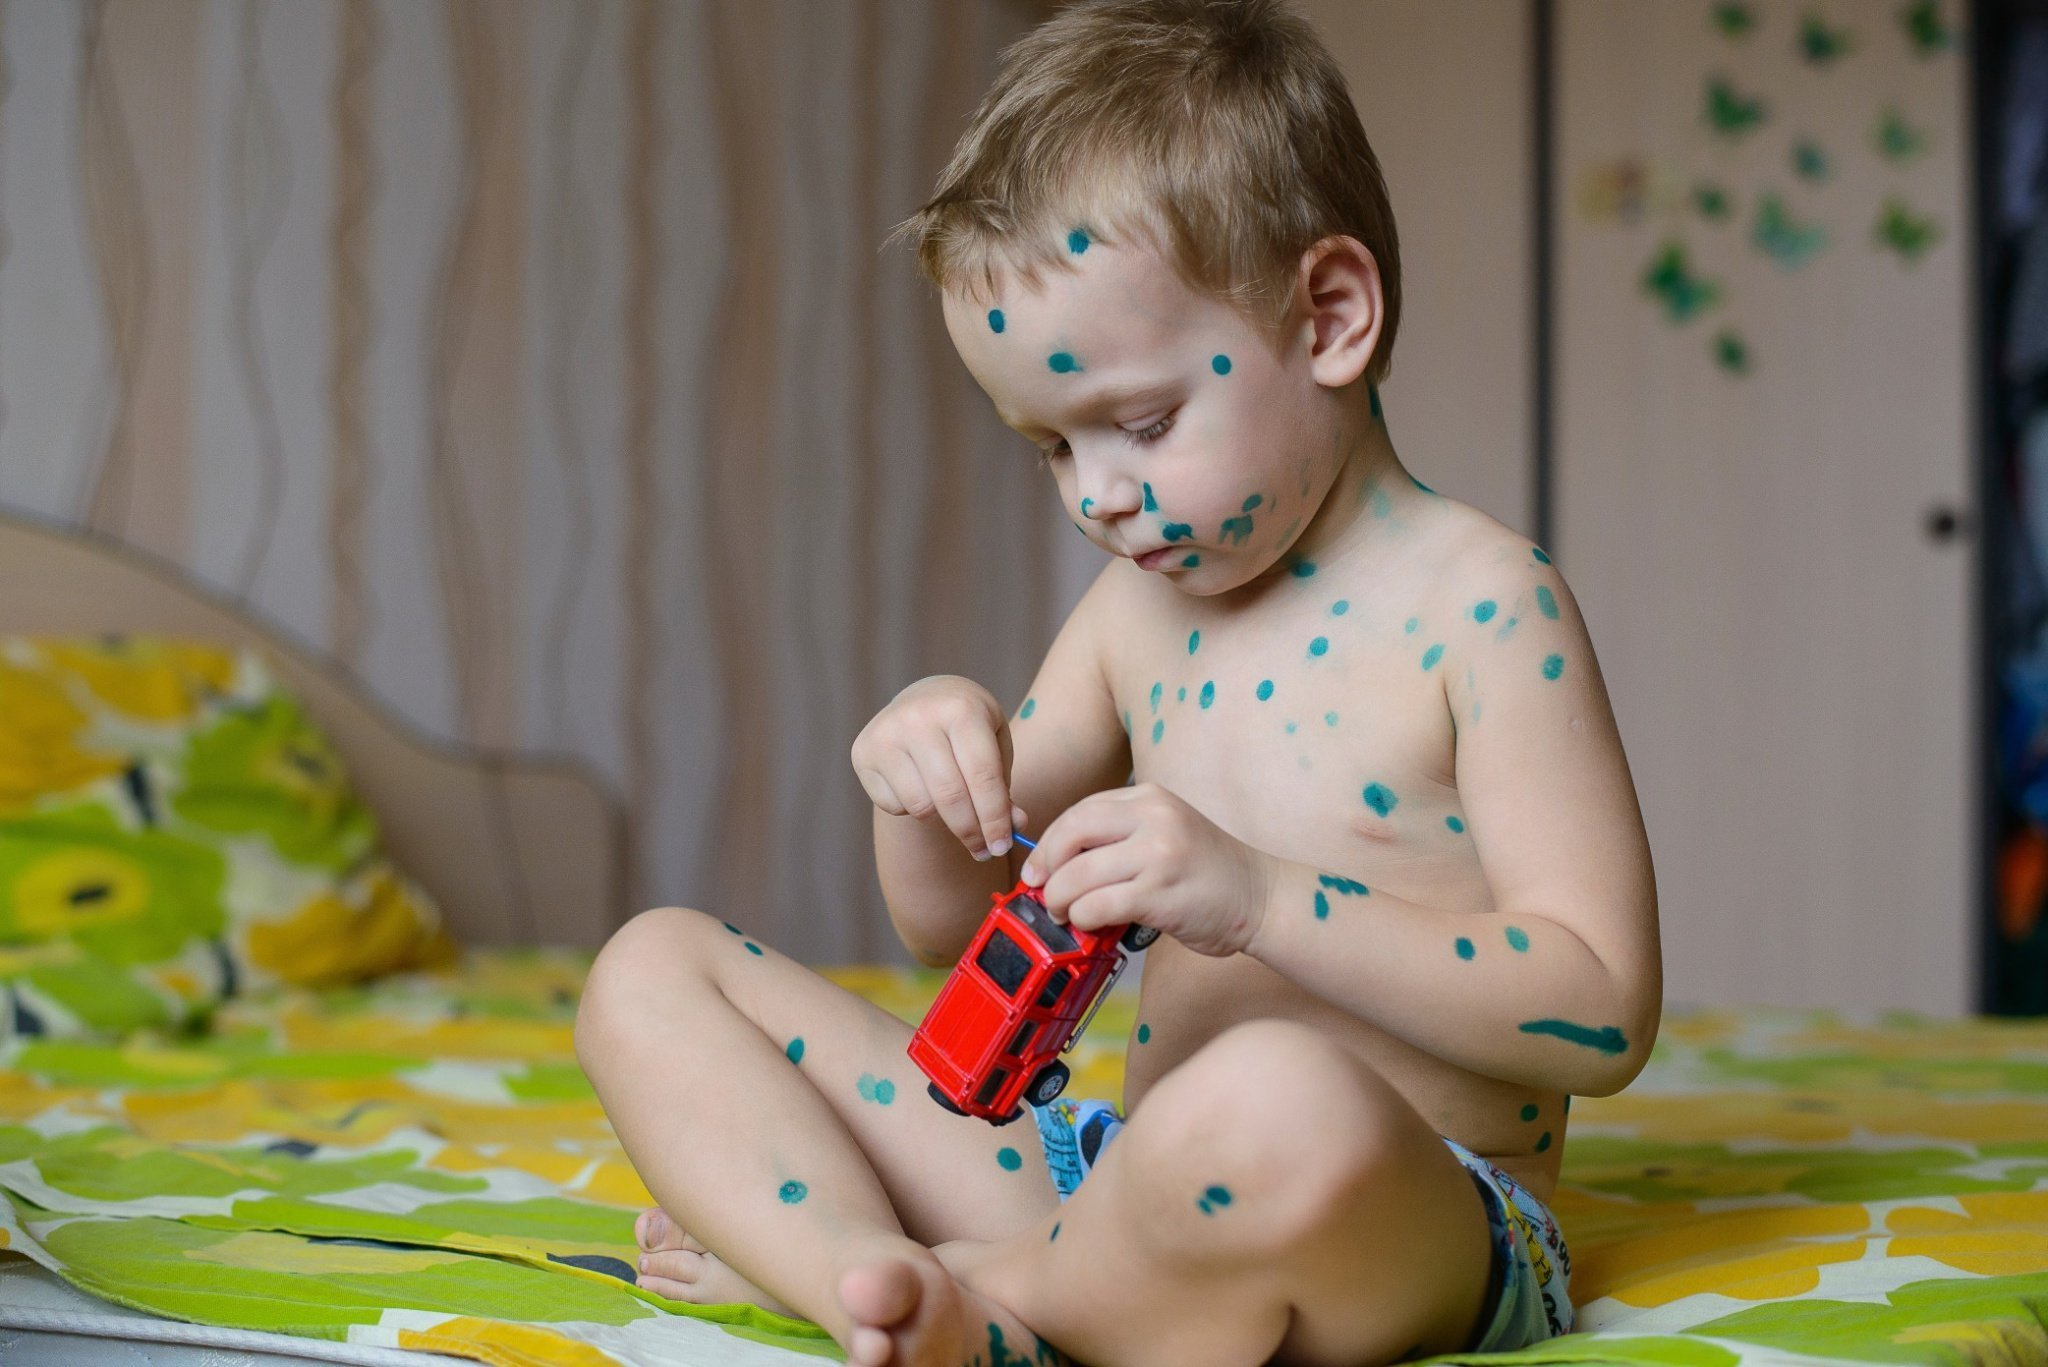 a-small-a-boy-with-chicken-pox-lubricates-rashes-pan-green-the-solution_t20_ko1kR3.jpg